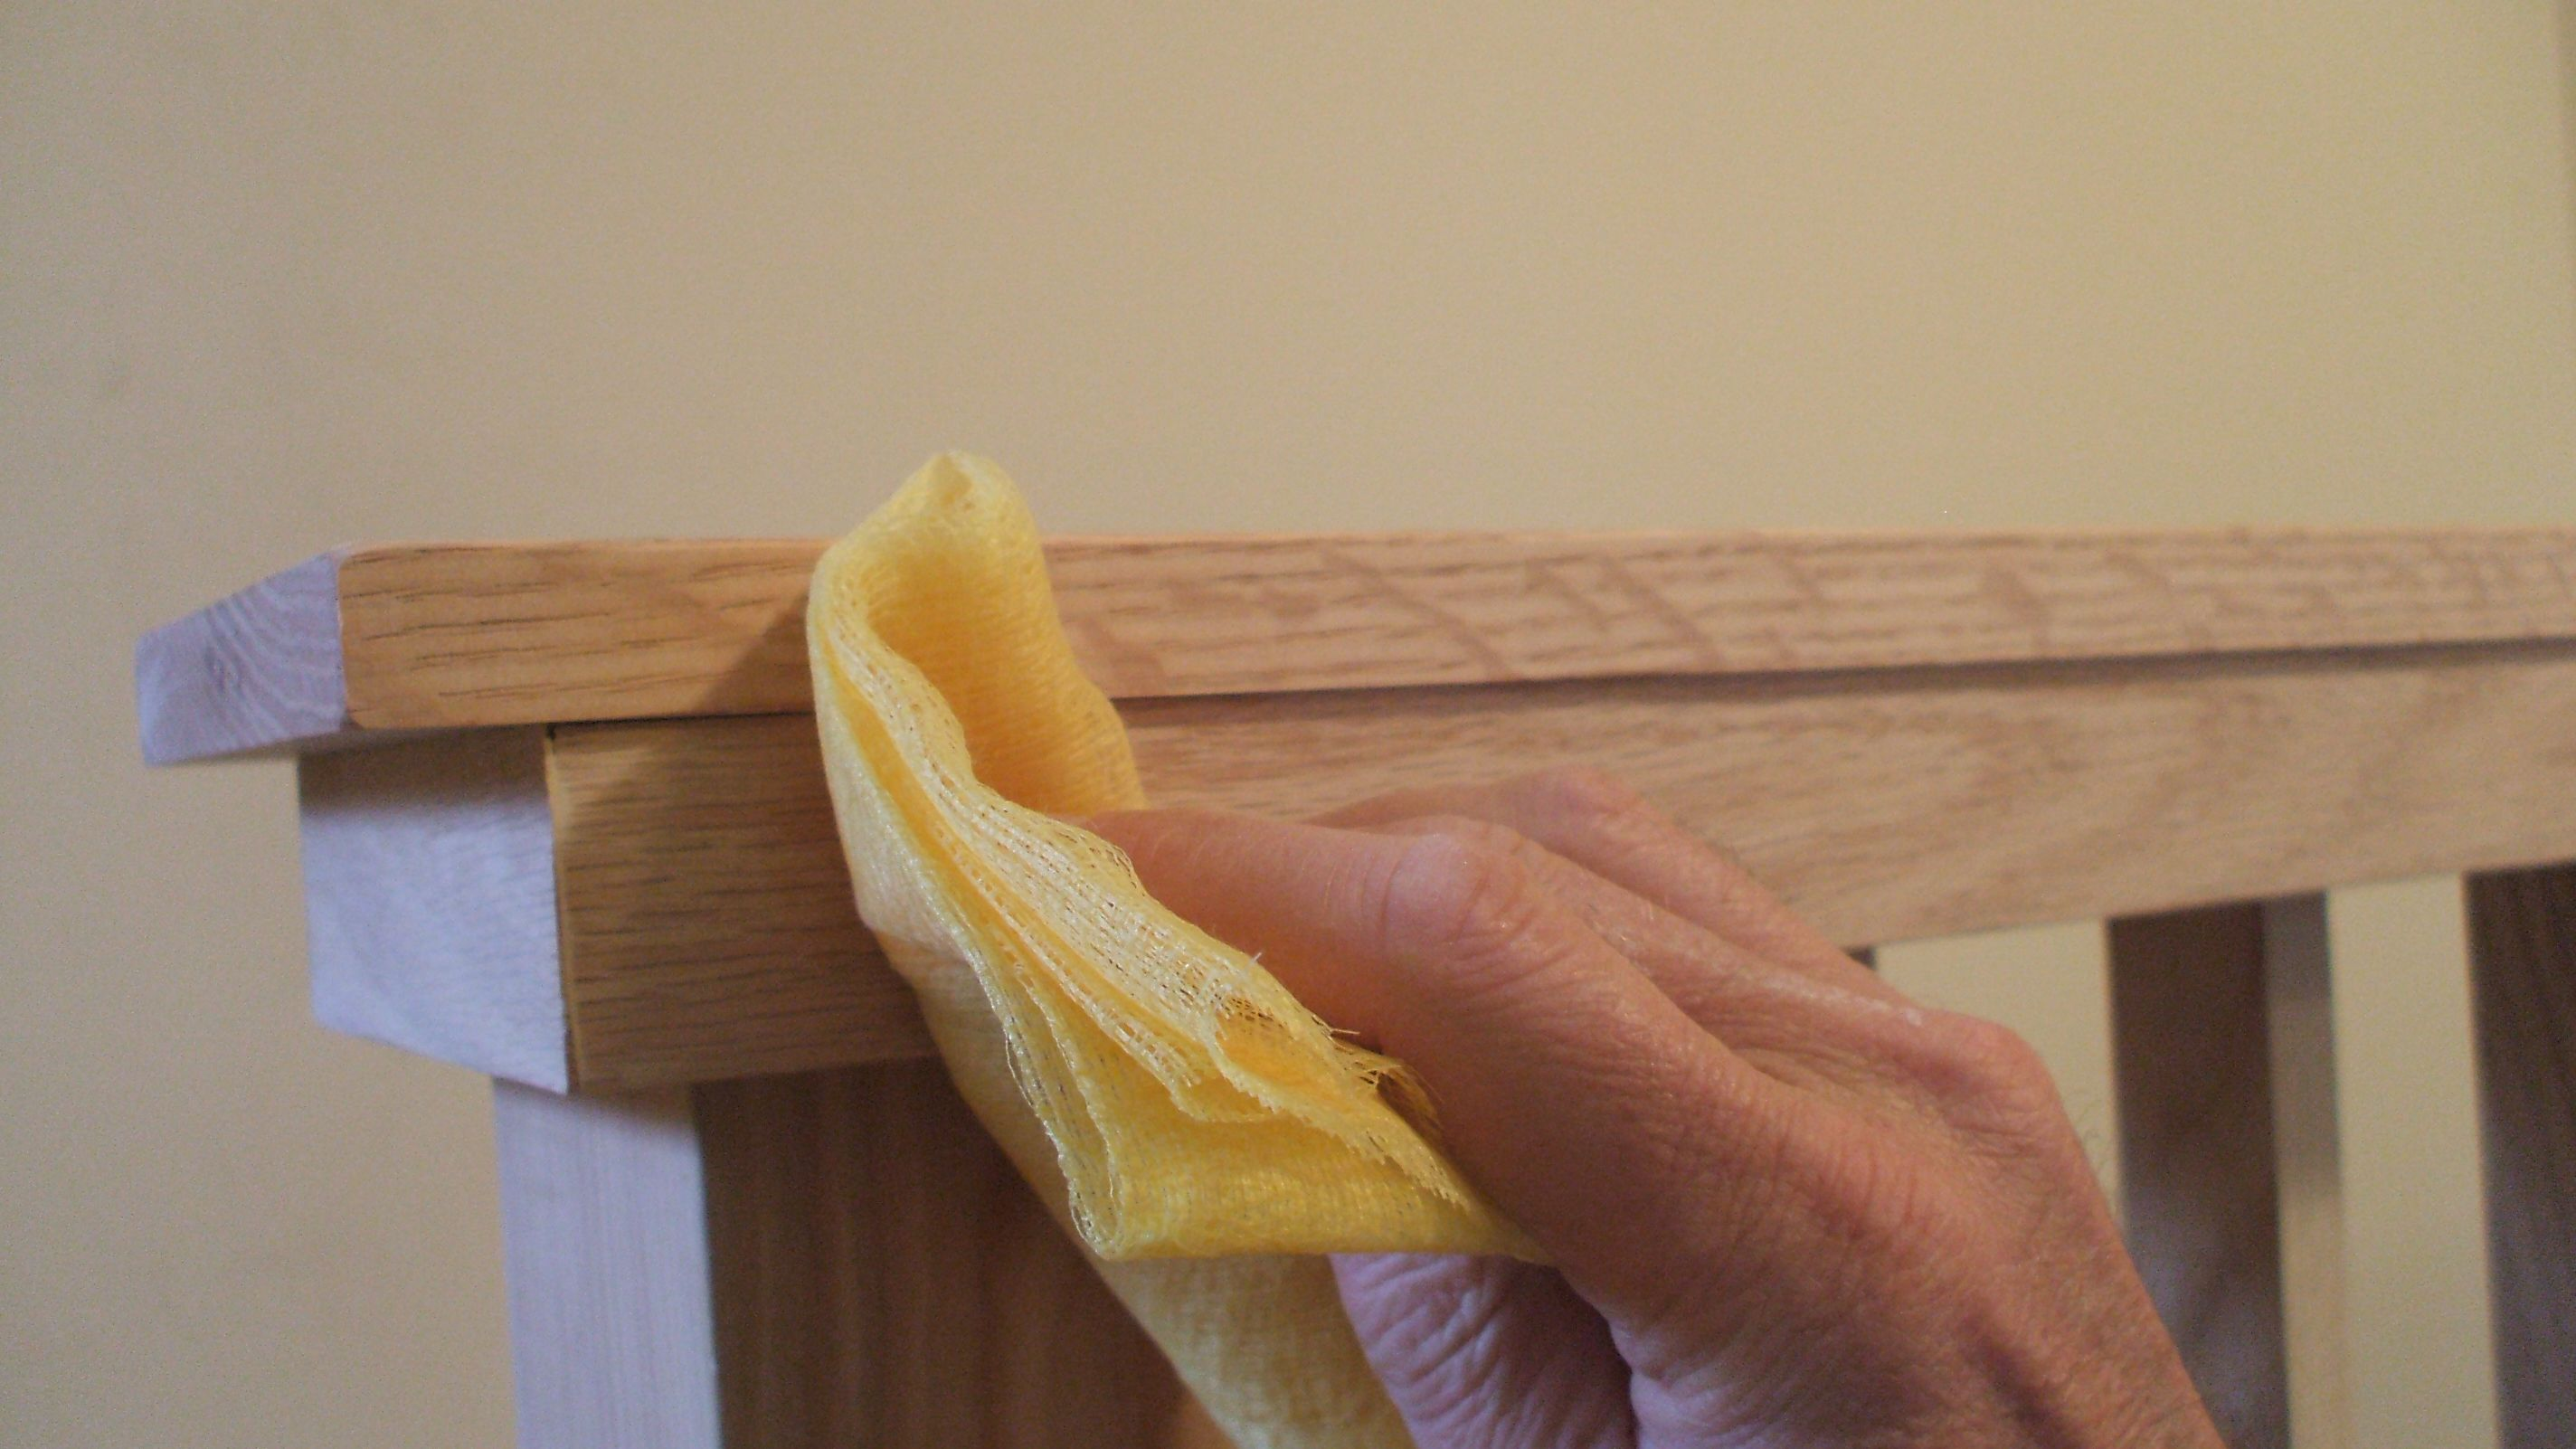 How to Use a Tack Cloth to Clean a Surface